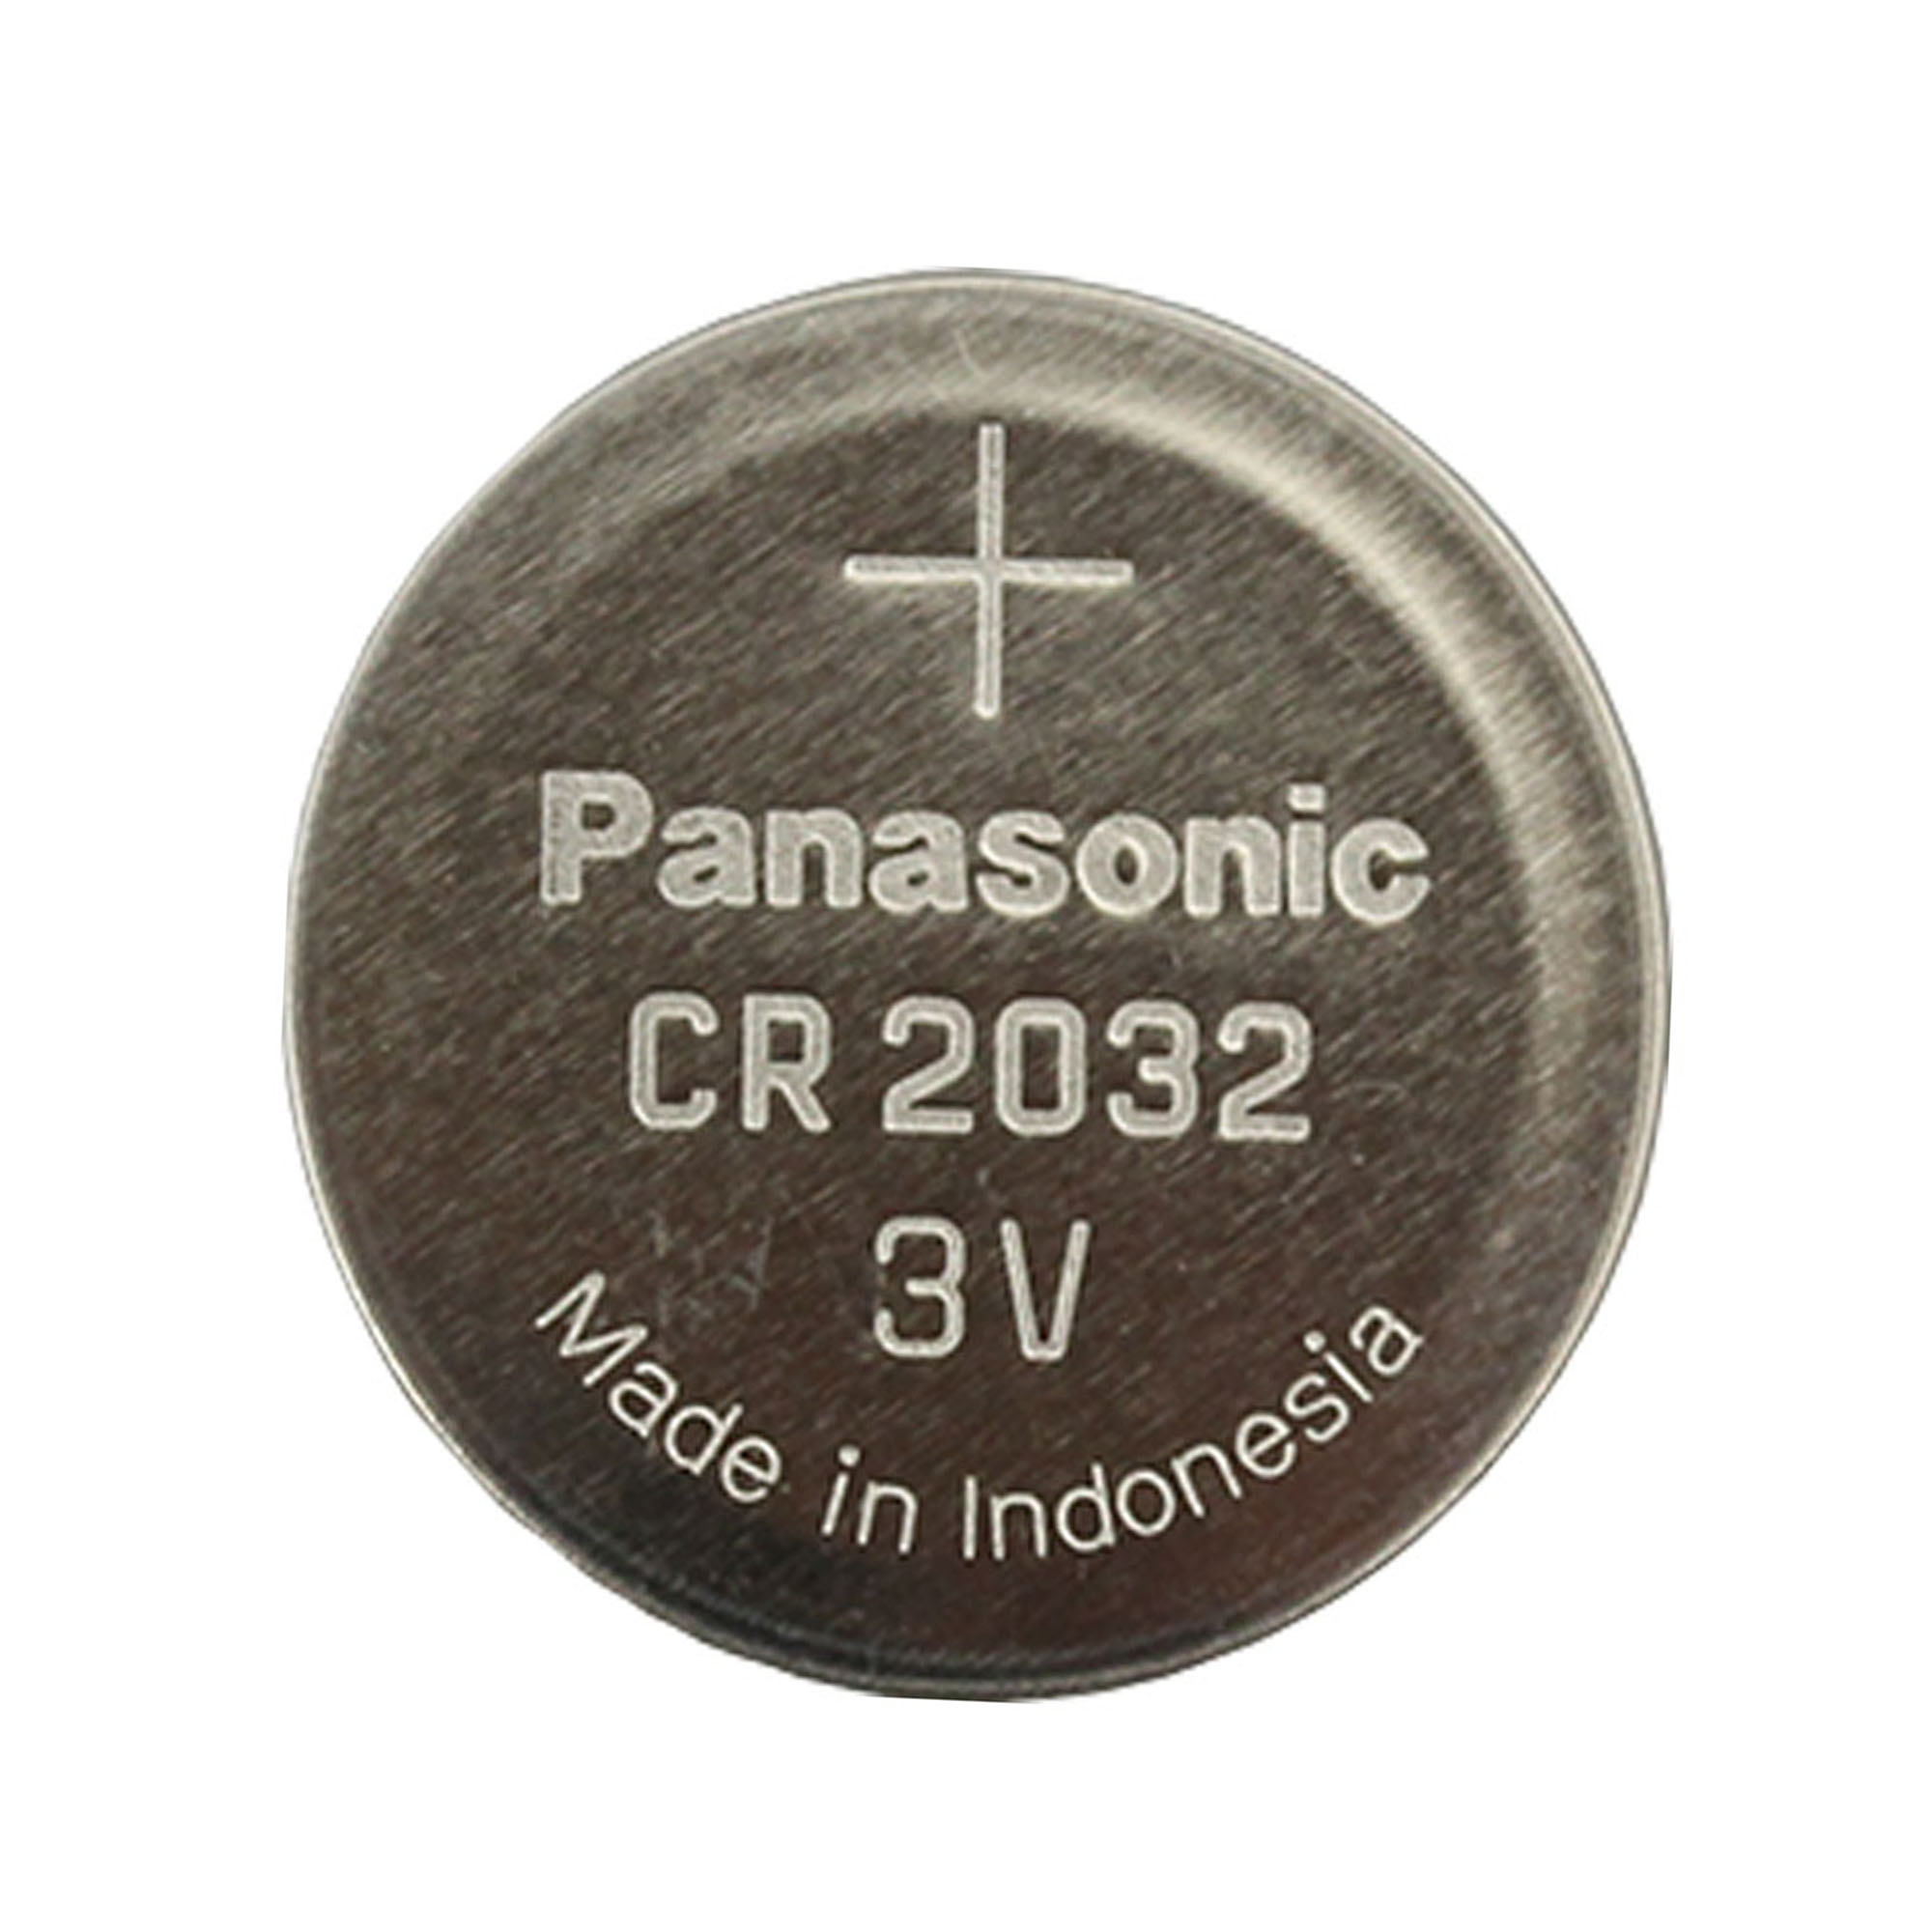 Cr2032 Lithium Battery Cr2032 Panasonic 3 Volt Lithium Coin Cell Battery